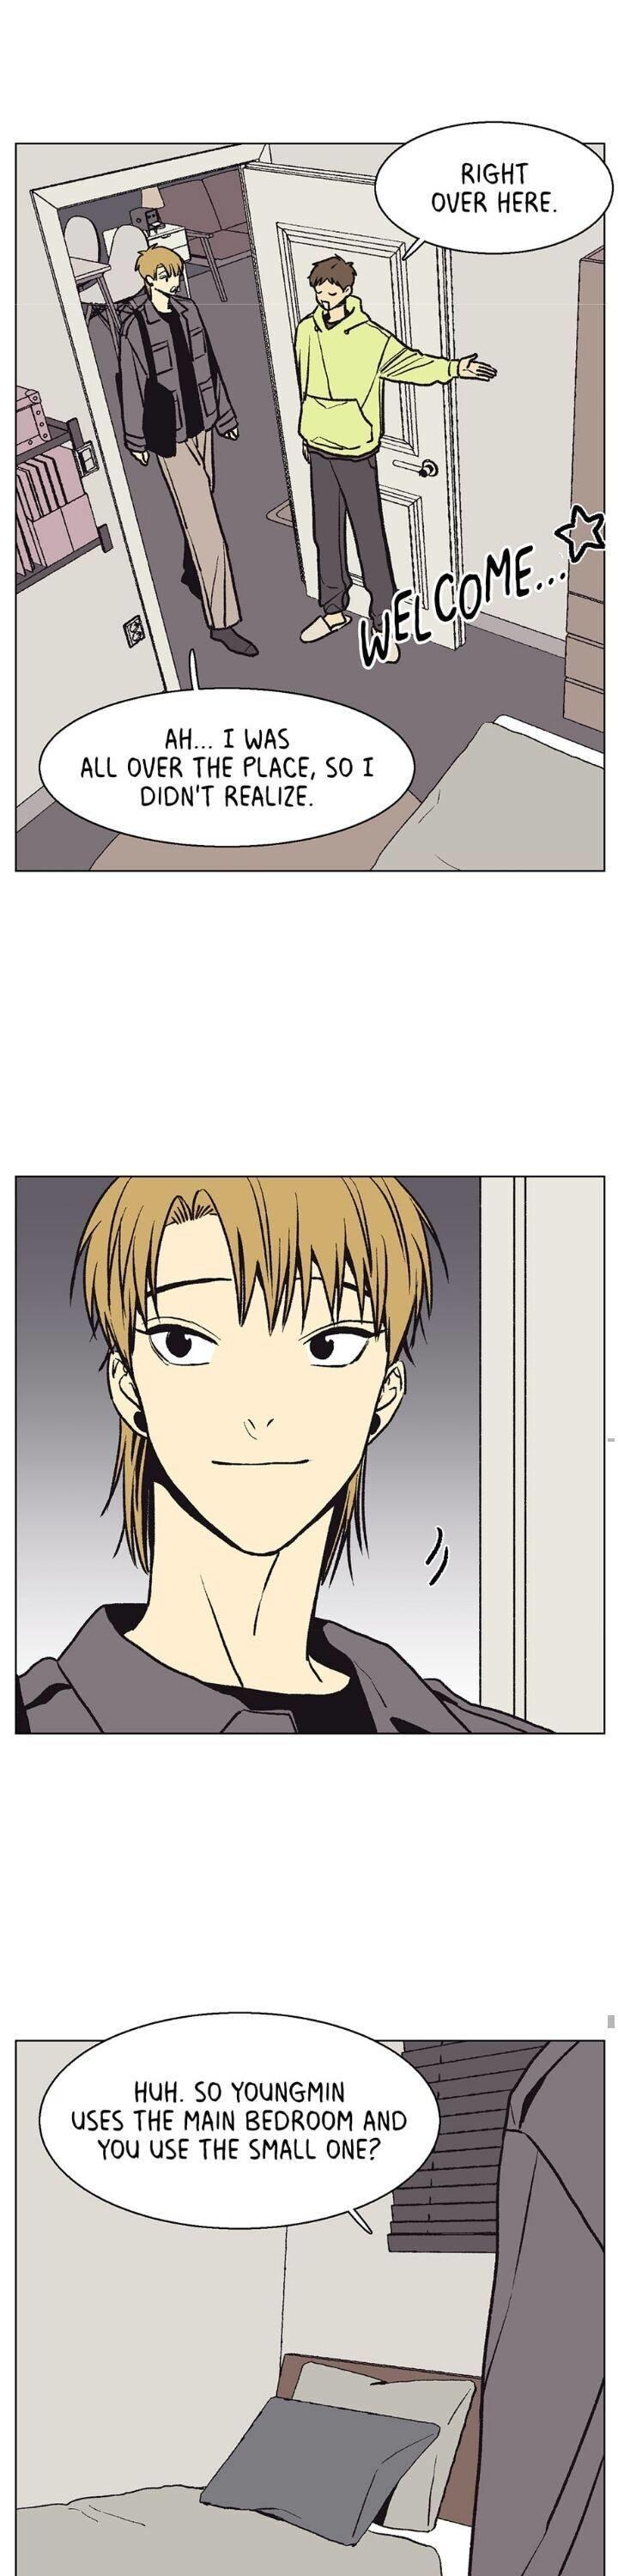 The Spooky Love Tale Of Gongchan Seol Chapter 50 page 6 - Mangakakalots.com